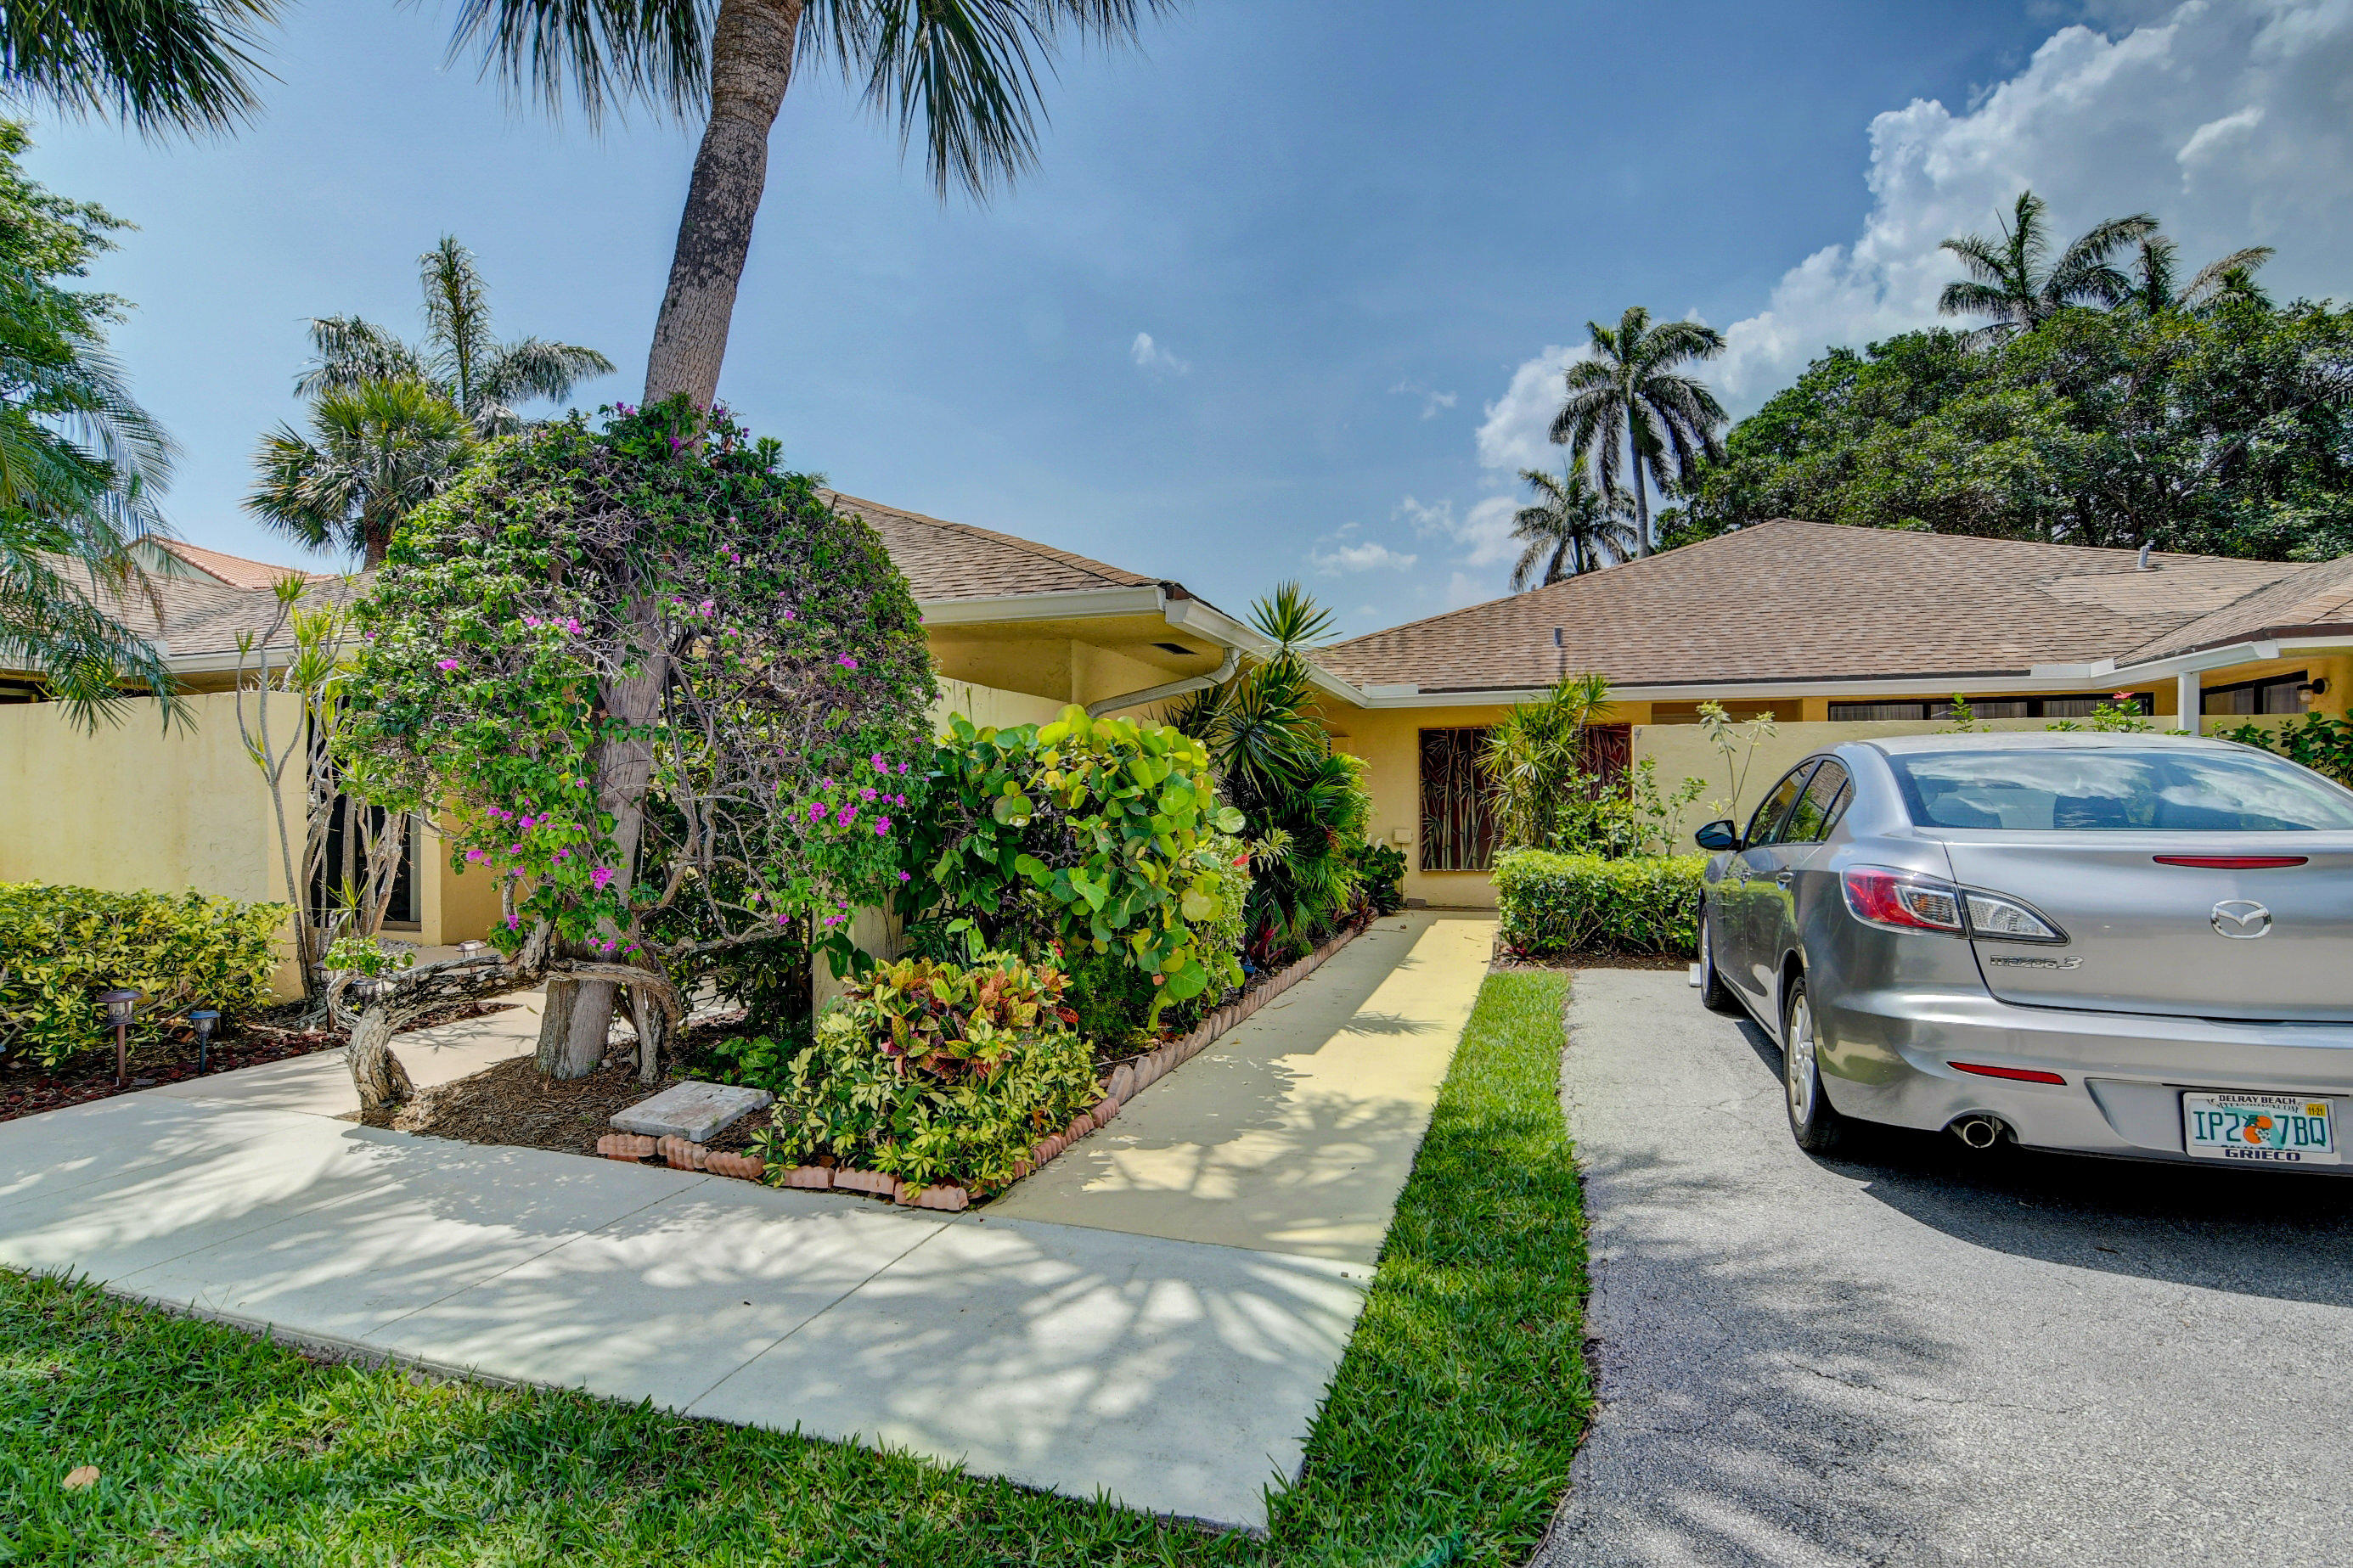 Welcome to Lakeshore, an intracoastal tropical gem, where every day is a vacation! Beautifully renovated 2/2 villa boasts a split floor plan, providing privacy for you and your guests. Open, light and bright, with updated white kitchen cabinetry,  granite and stainless appliances.  Bathrooms have been completely redone, with neutral tile and oversized master shower.  Brand new AC.   Lovely park-like view in back.  Villa is steps from intracoastal heated pool, spa and gazebo, where you can sip your favorite beverage while listening to the soothing waves.  Like kayaking and paddle boarding?  Bring your water toys!  Clubhouse incl. newly paved tennis, pickle ball, shuffleboard courts and exercise room.  All ages, dog friendly & low HOA make Lakeshore the perfect place to call home!